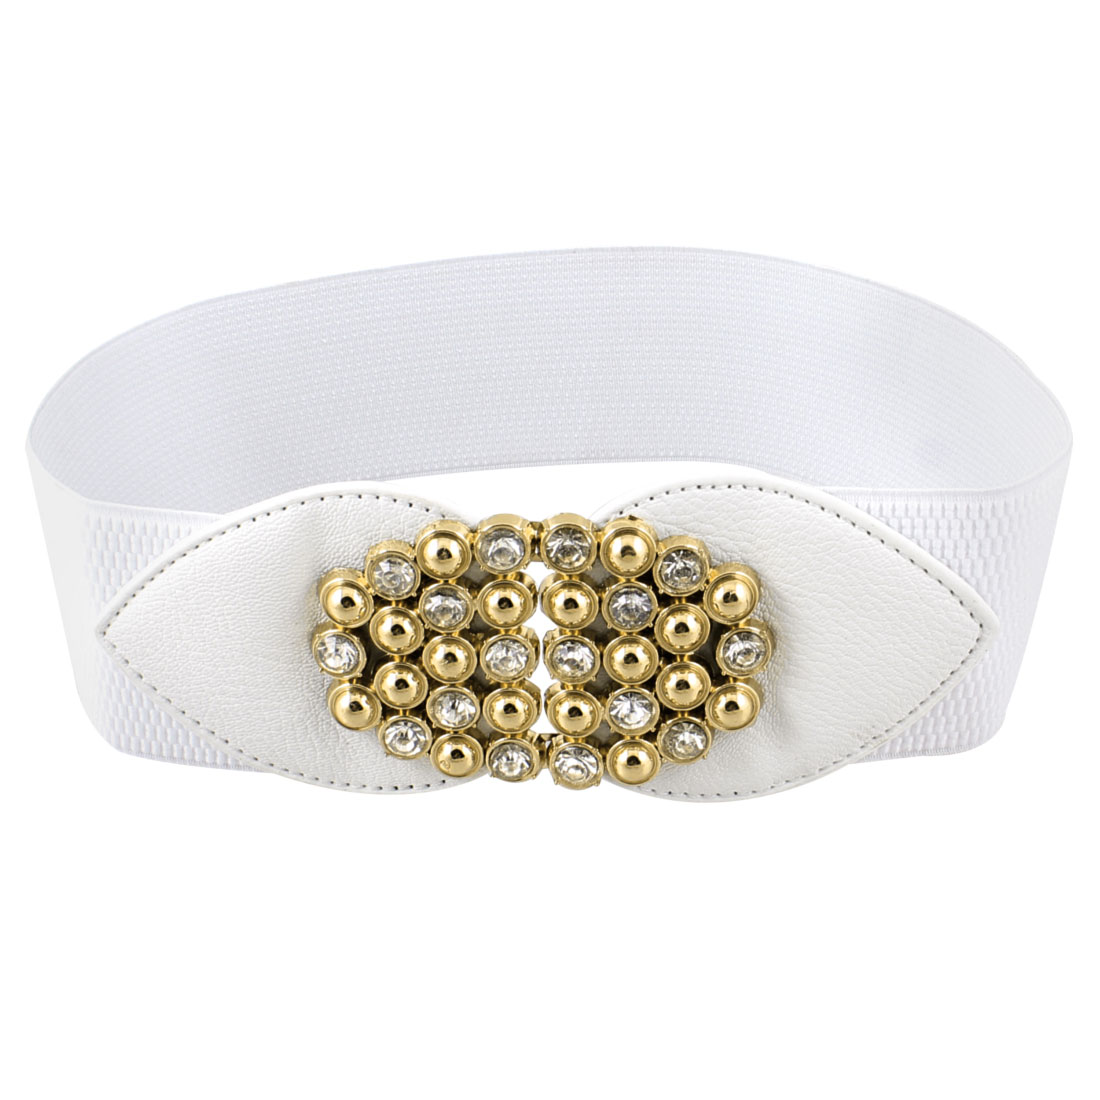 Faux Leather Plastic Rhinestone Decor Stretchy Waist Belt White for Women